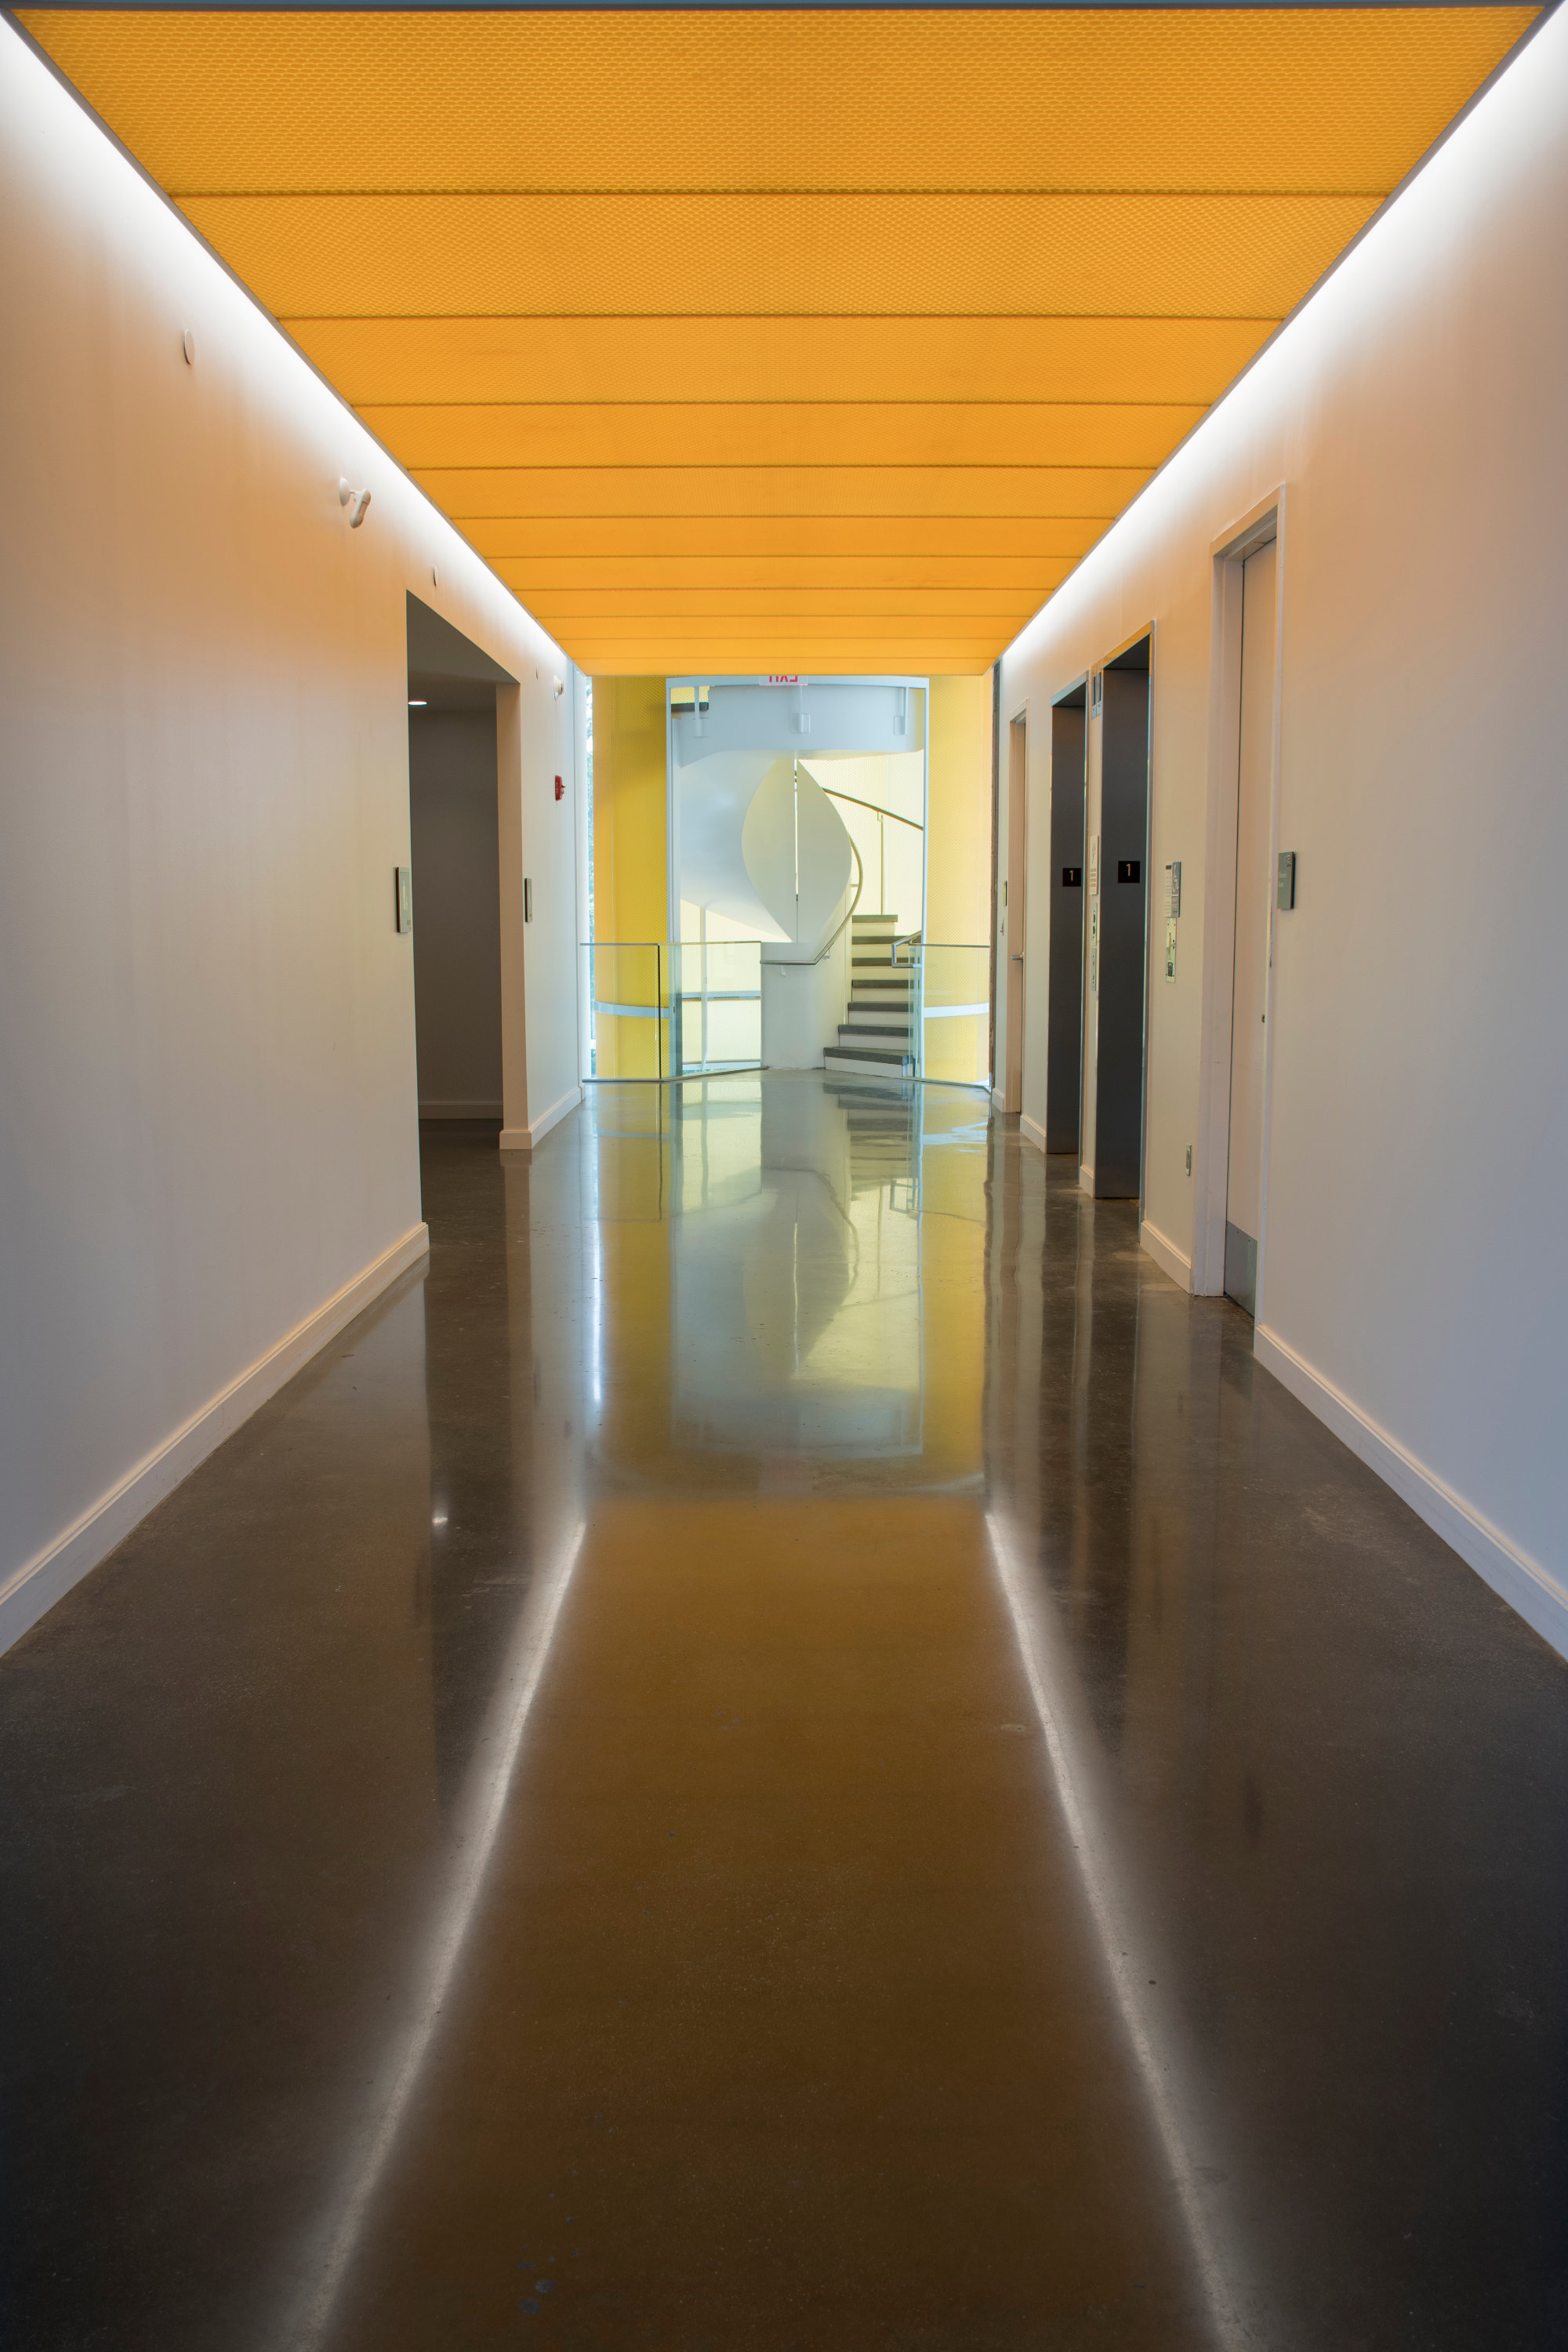 A view of an interior hallway in the Fascitelli Center for Advanced Engineering